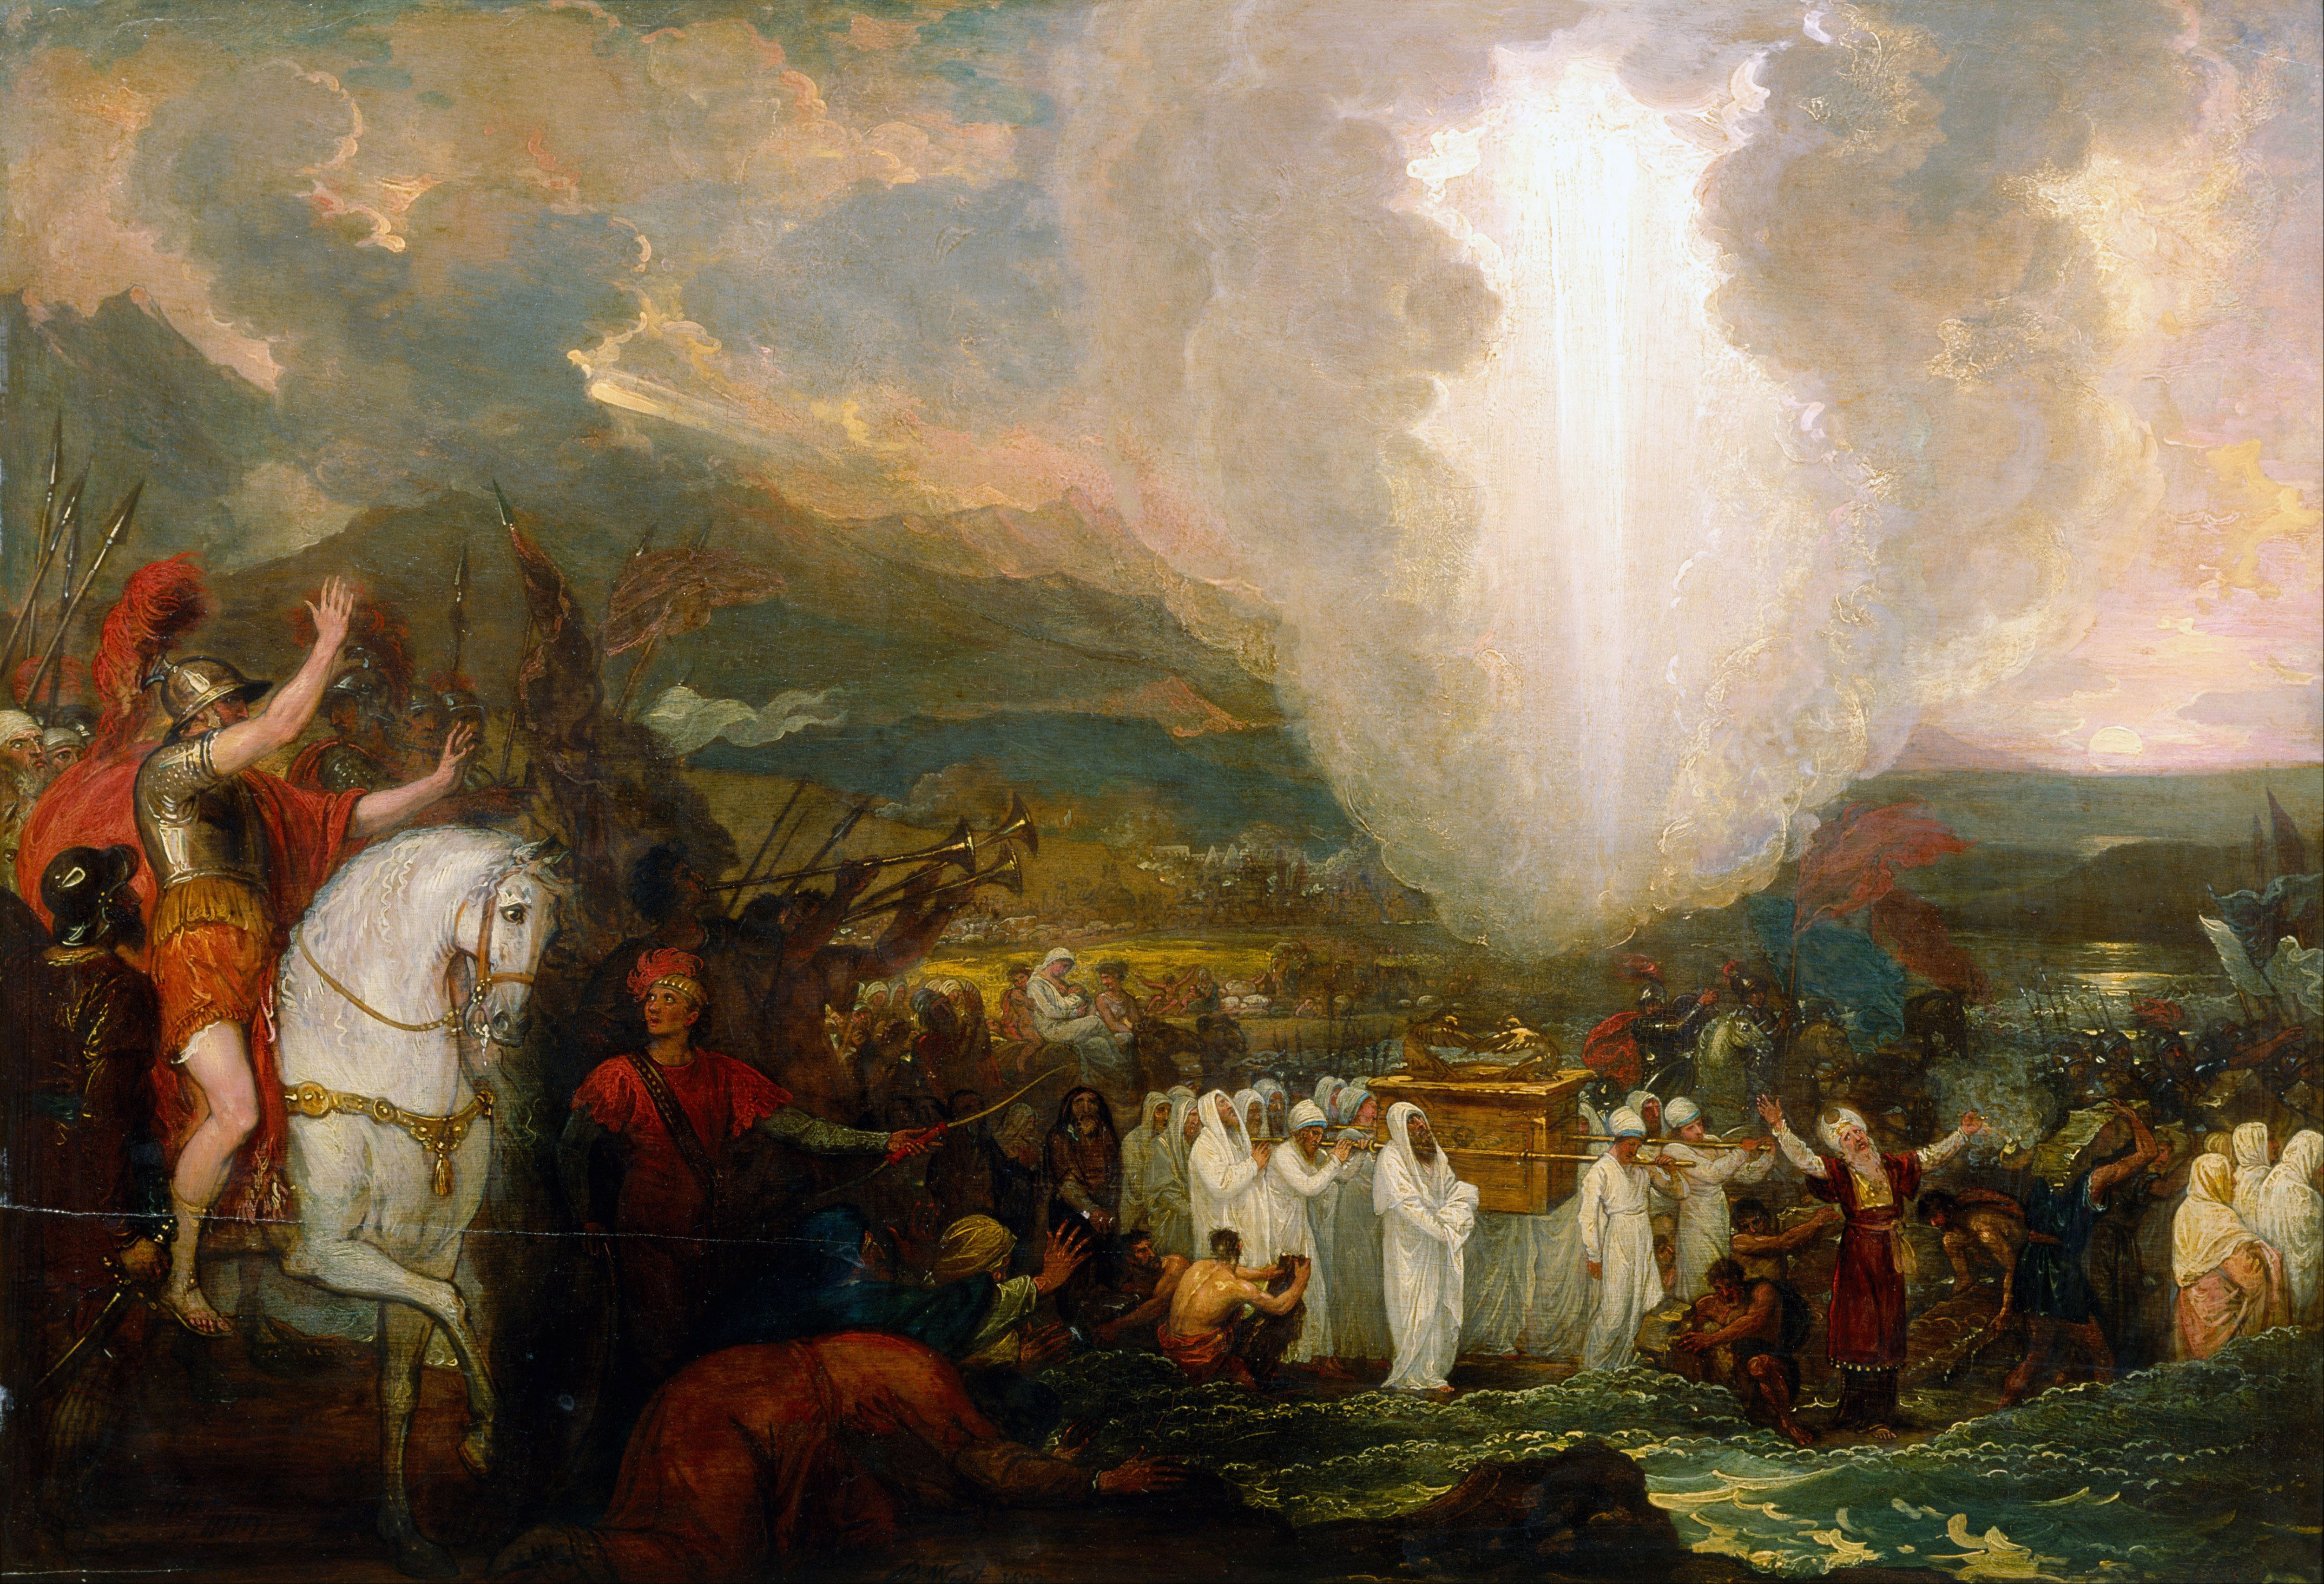 WEB2-Benjamin_West_-_Joshua_passing_the_River_Jordan_with_the_Ark_of_the_Covenant_-_Google_Art_Project.jpg